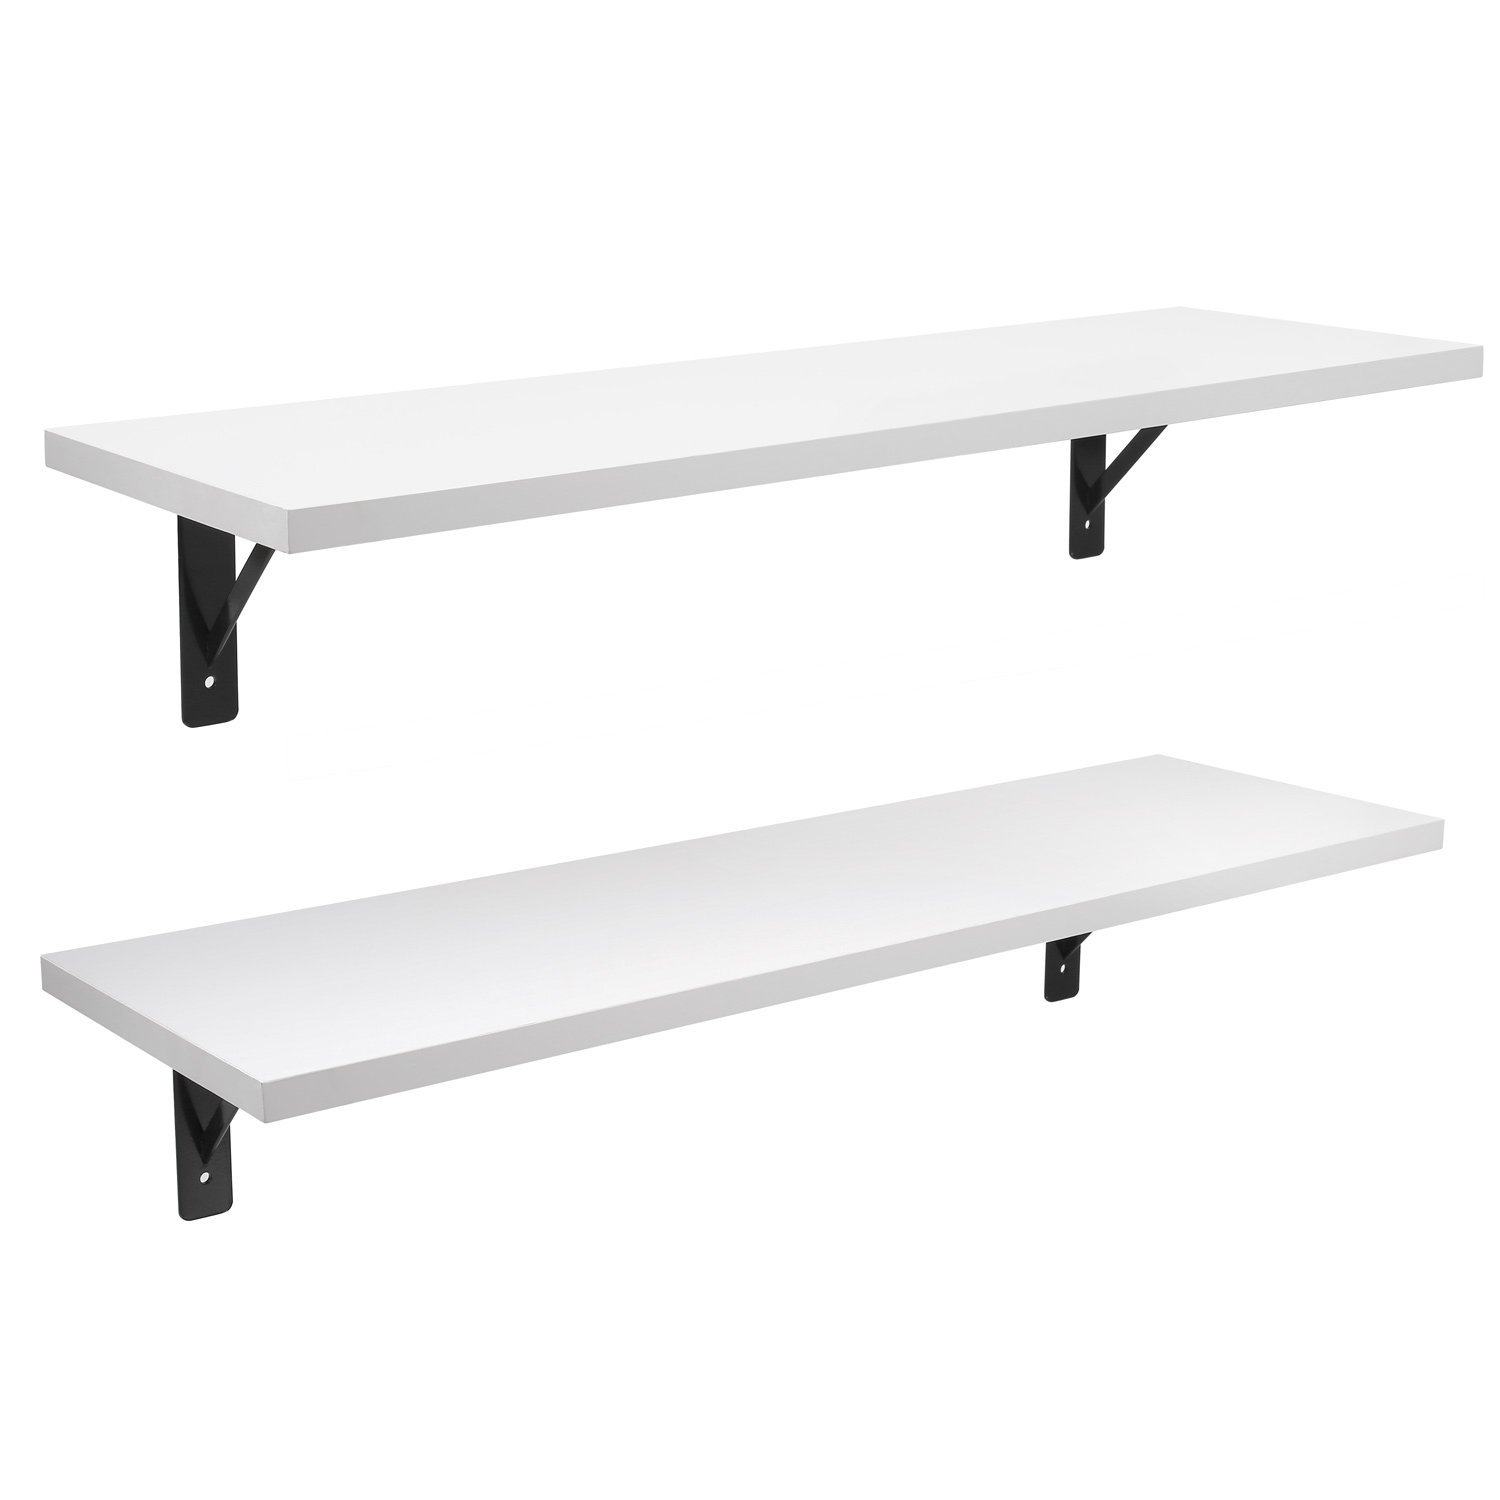 Details About 2 Display Ledge Shelf Floating Shelves Wall Mounted With Bracket